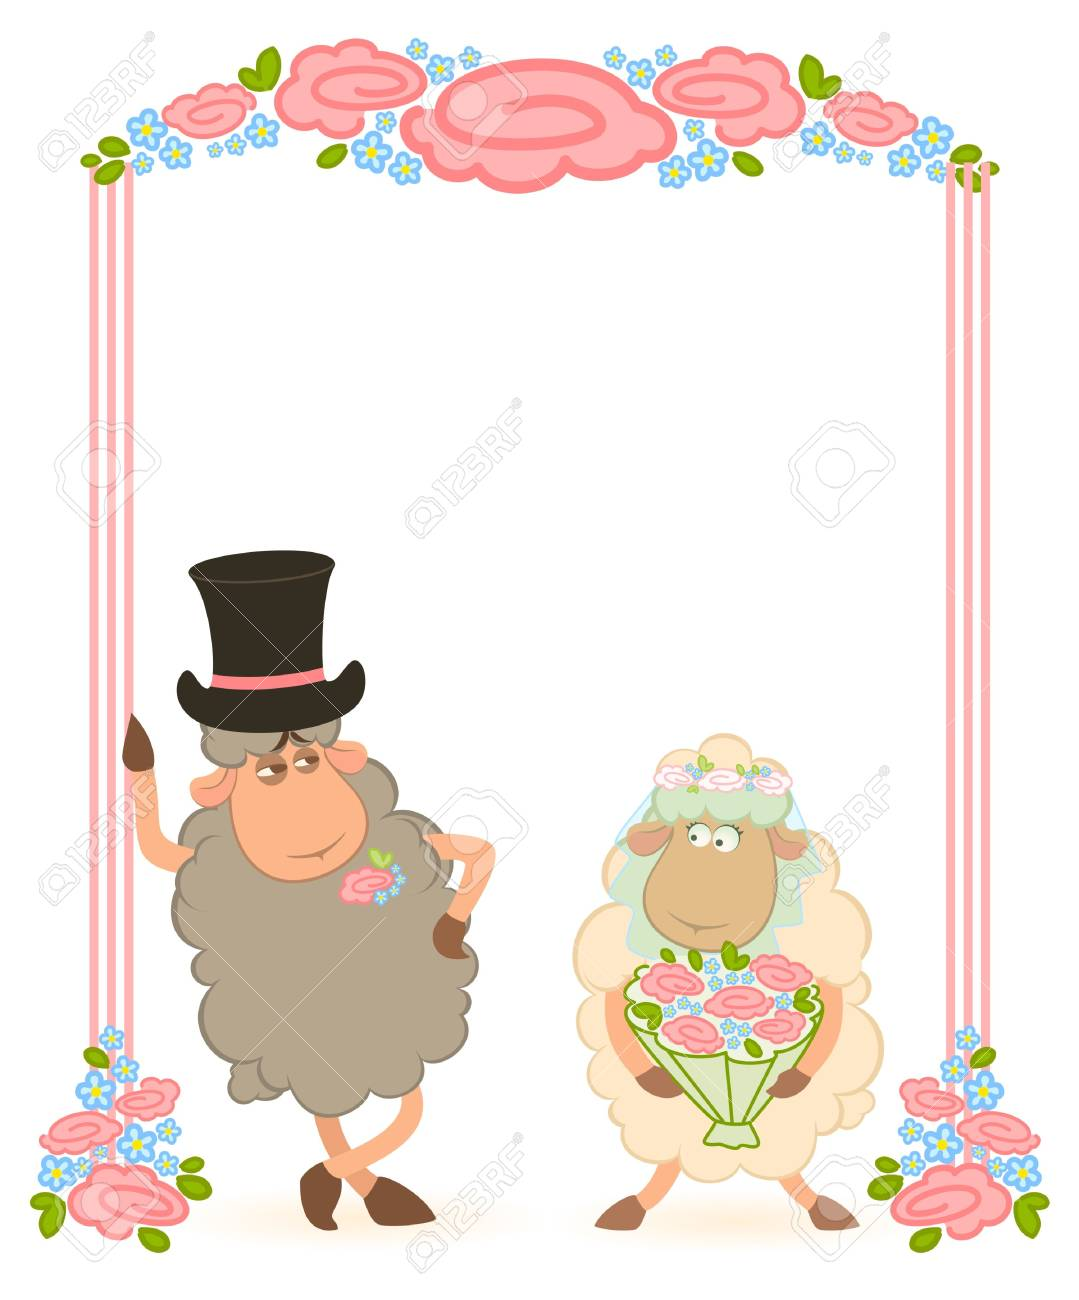 sheep bridegroom and bride Stock Photo - 7881090